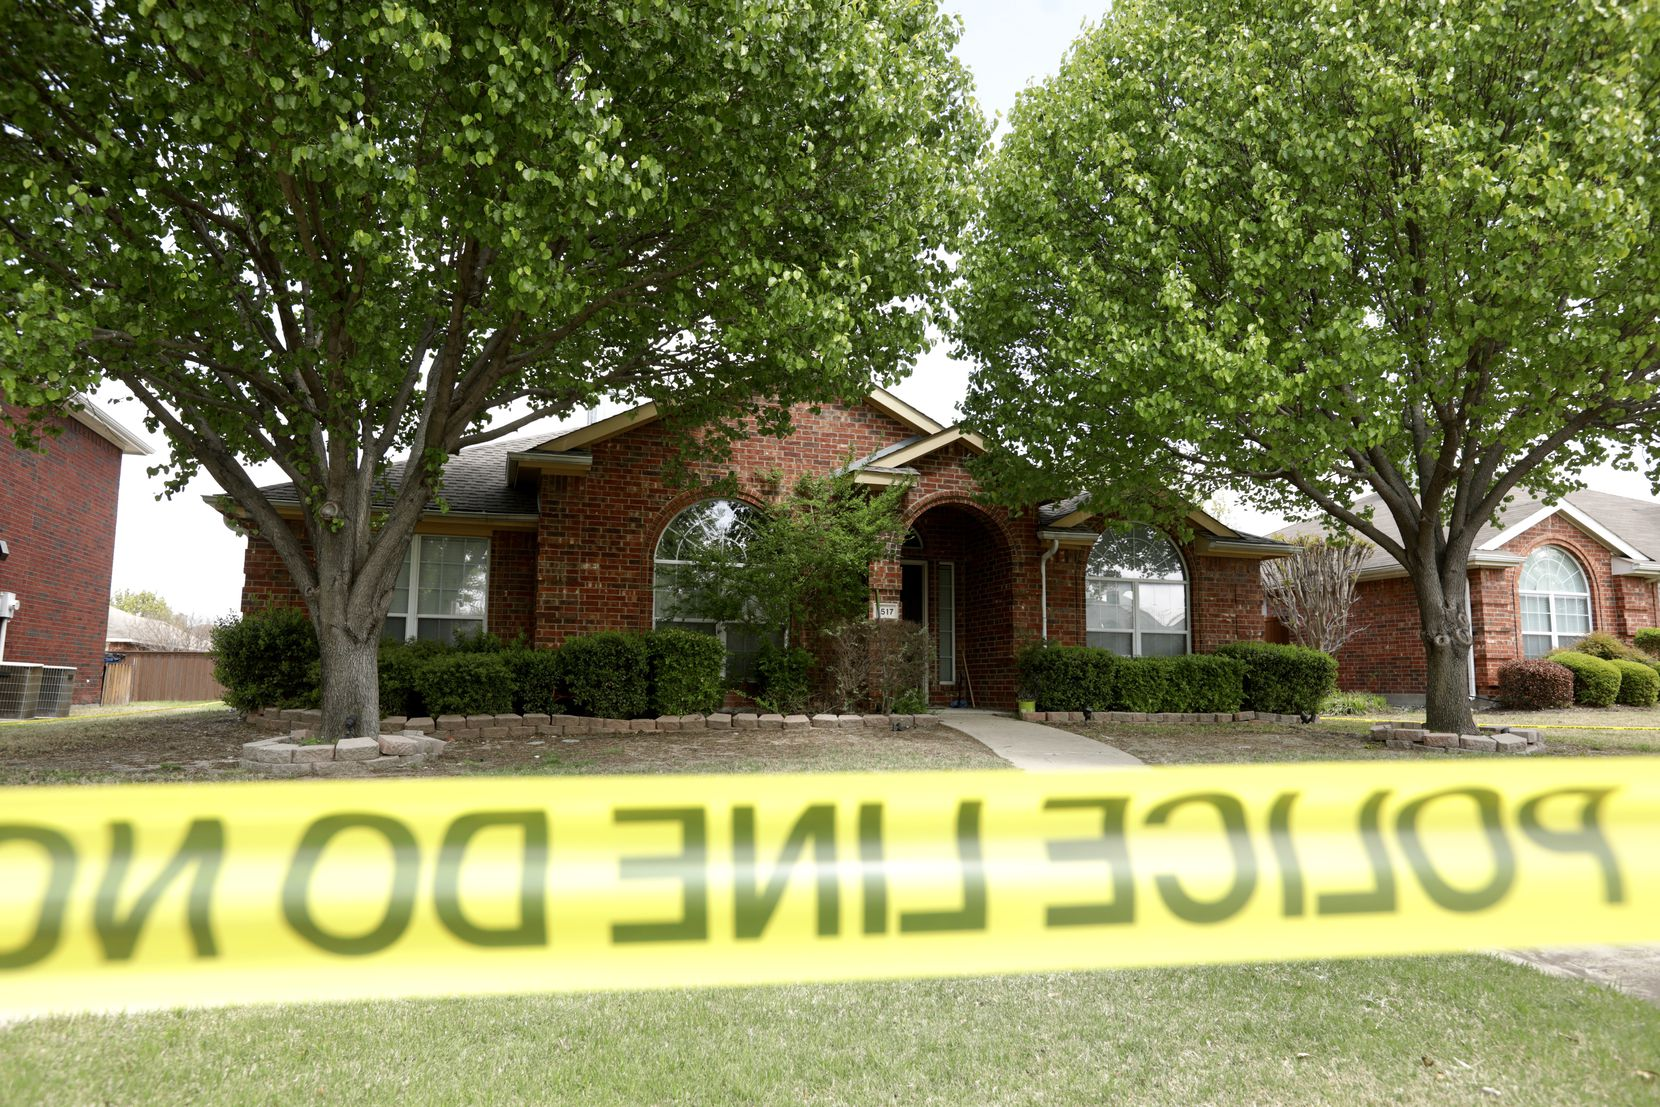 Police tape surrounded the family's home Monday.